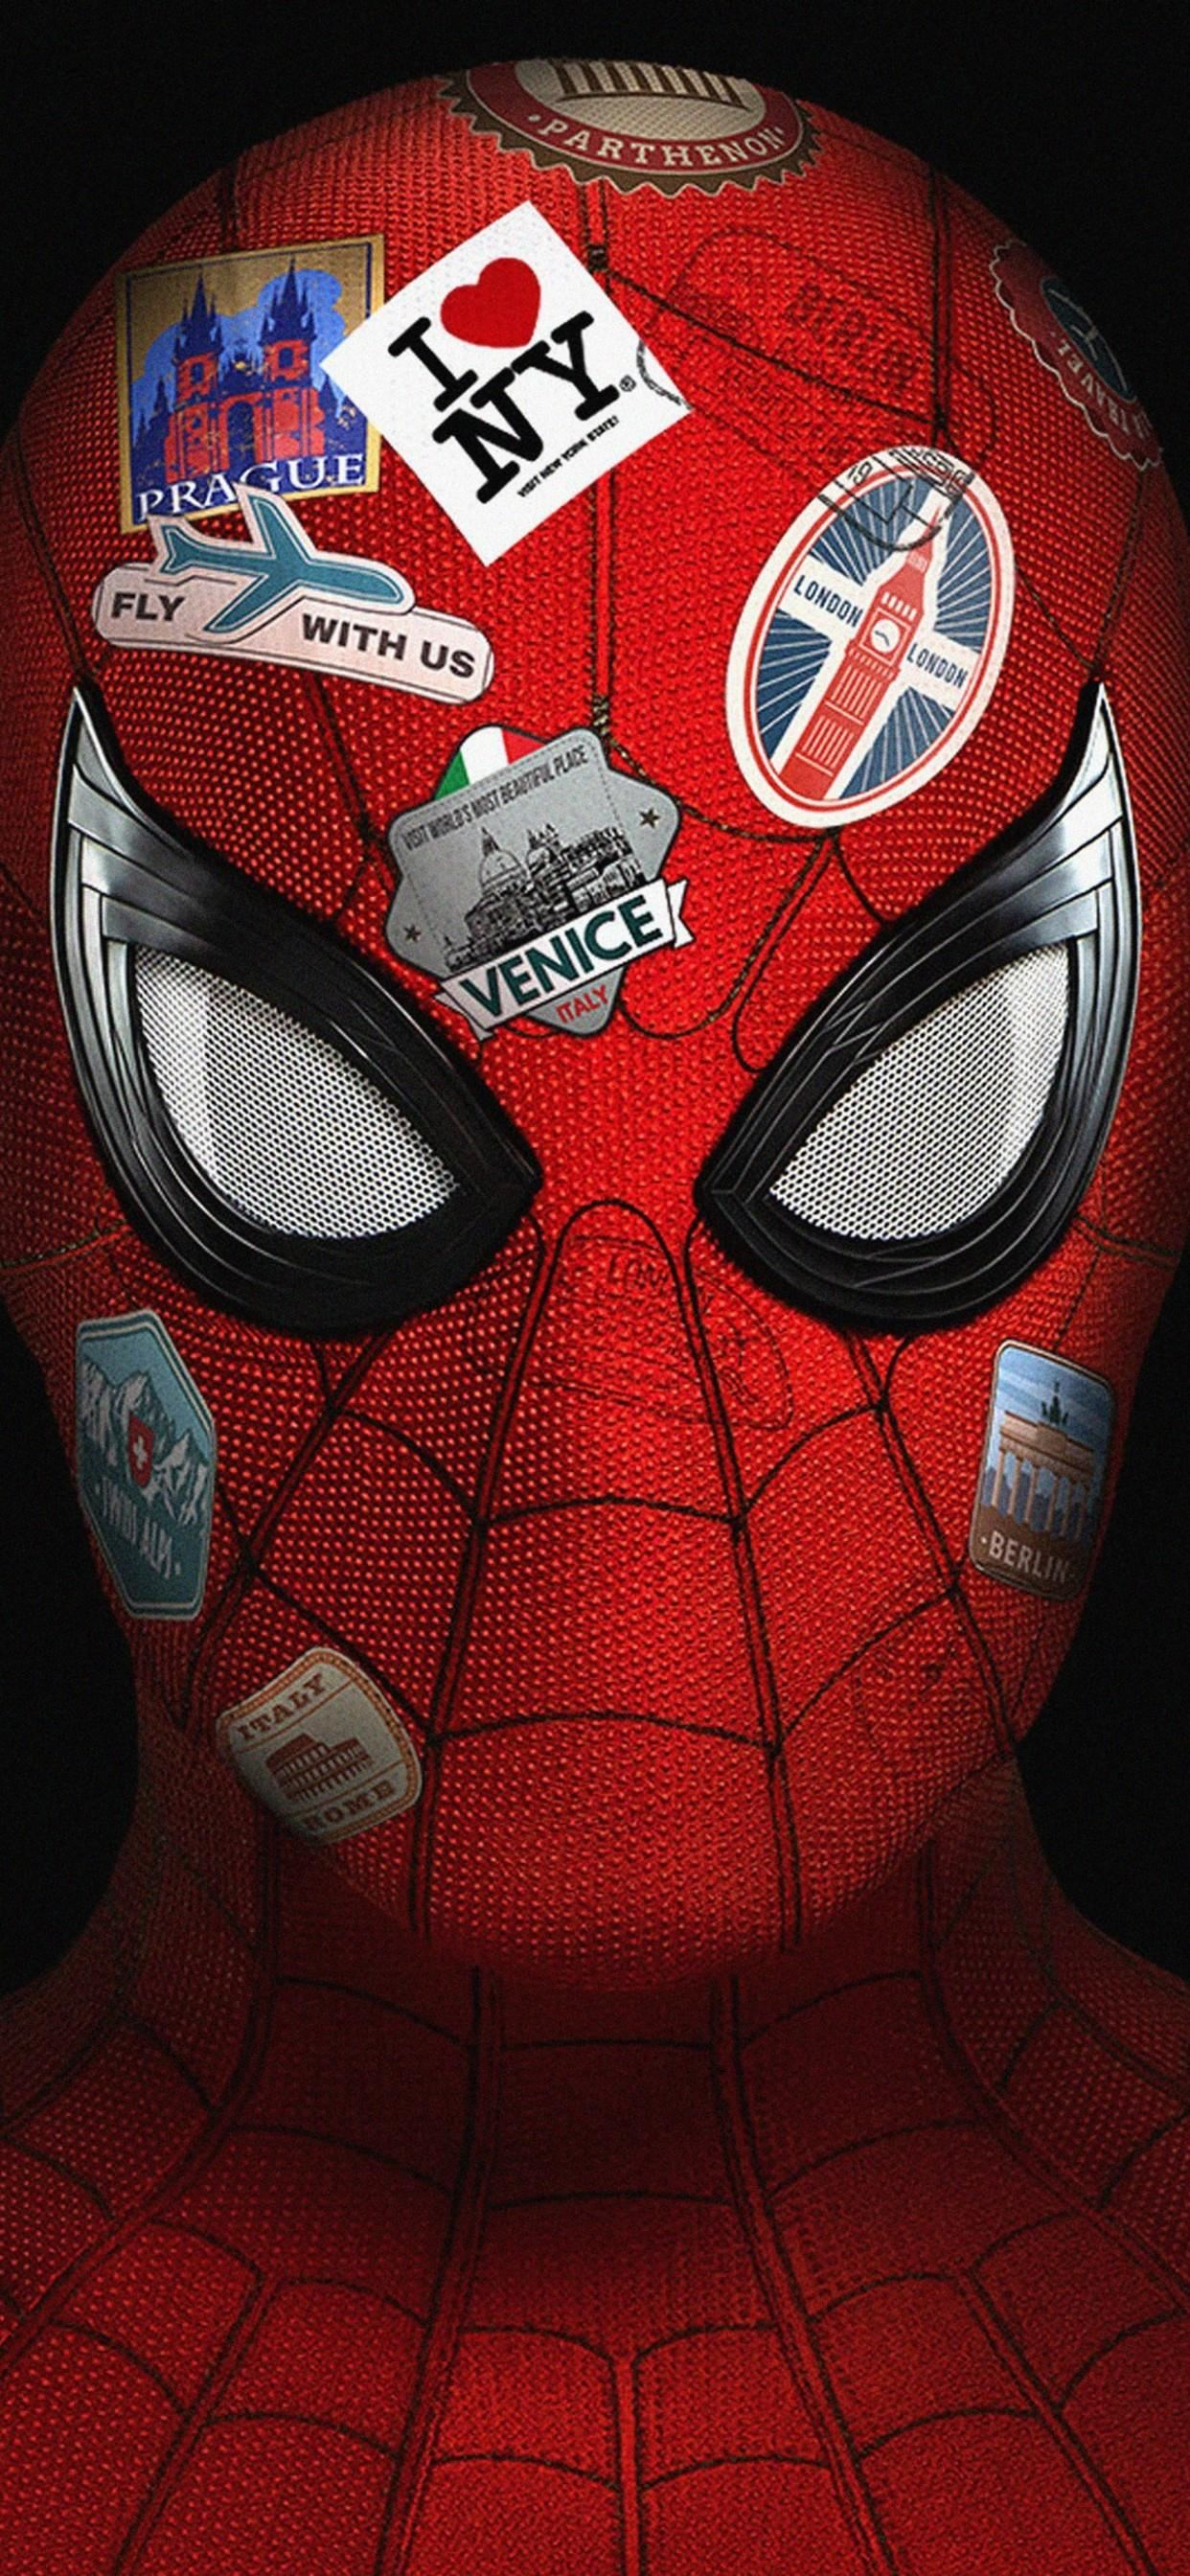 4k spider far from home iPhone 11 Wallpapers Free Download